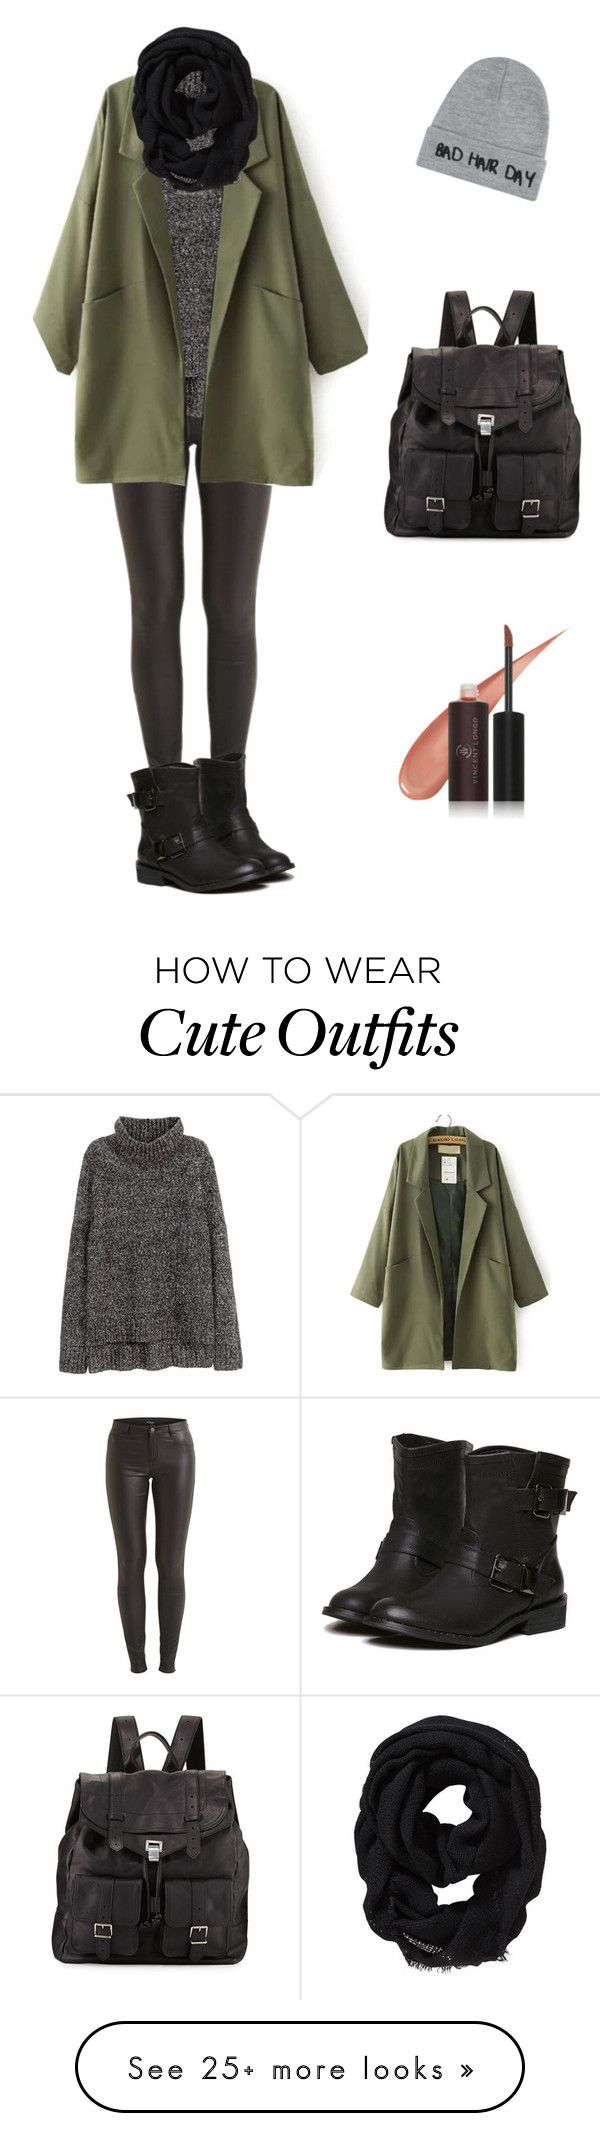 """Cute Autumn Outfit"" by shortbrunette on Polyvore featuring VILA, H&M, Proenza Schouler, Local Heroes, Old Navy and Vincent Longo"